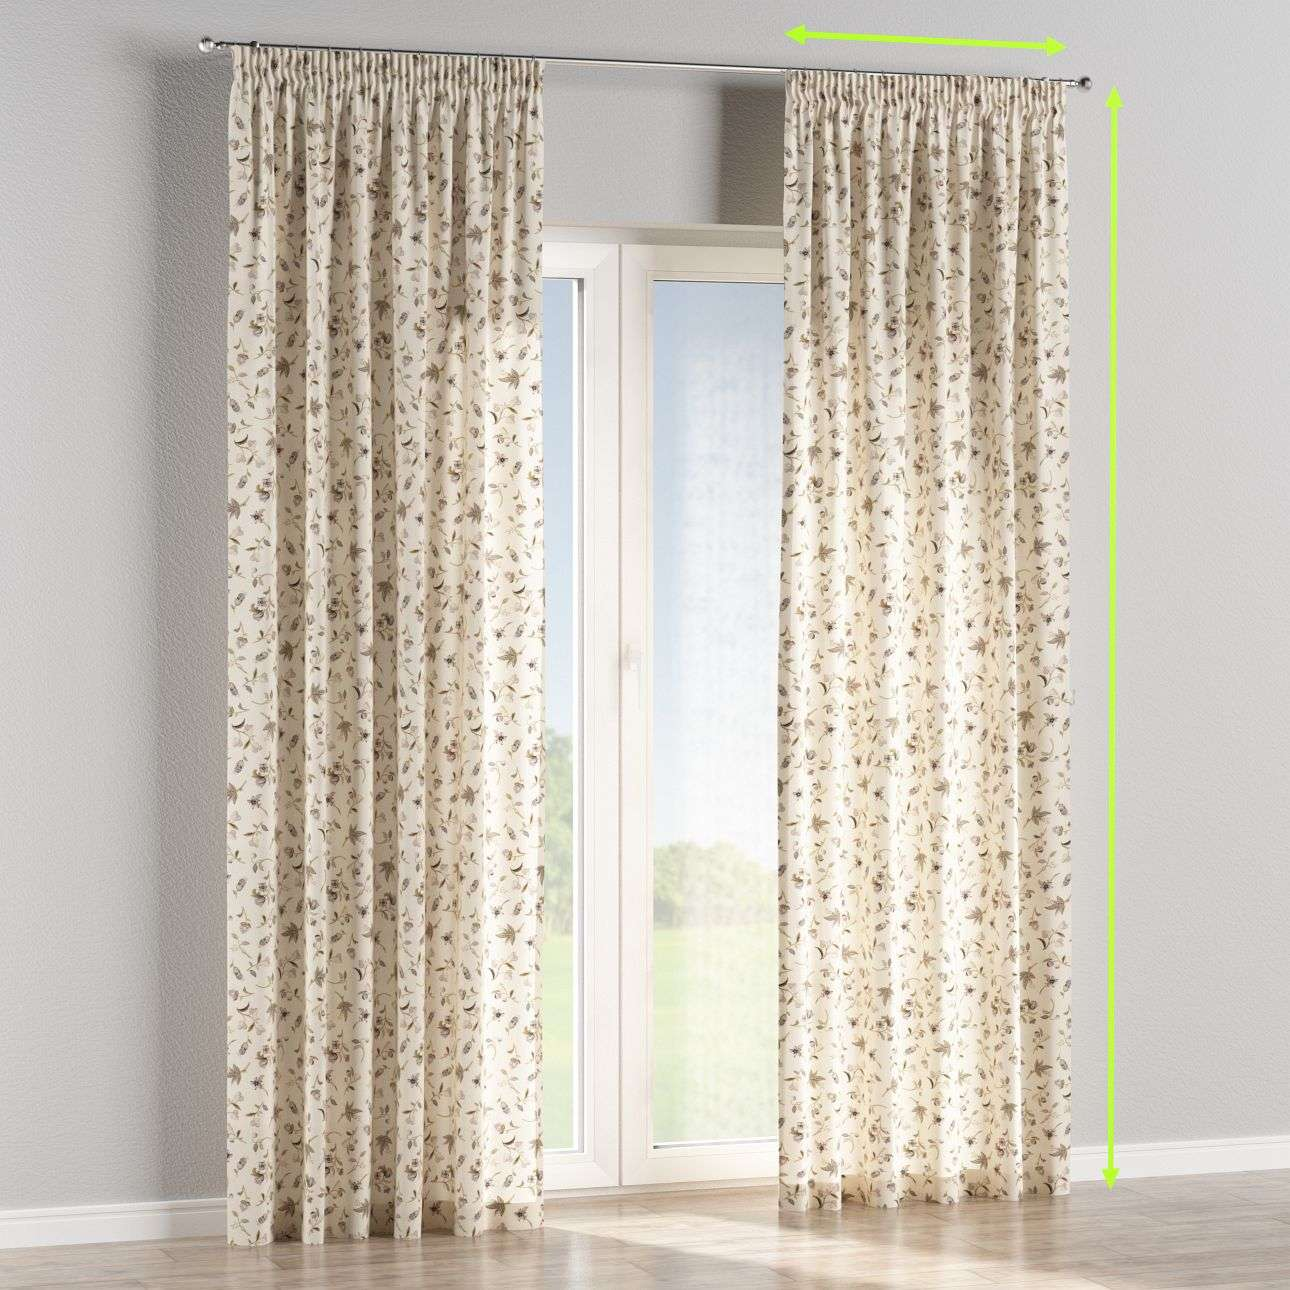 Pencil pleat curtains in collection Londres, fabric: 122-04